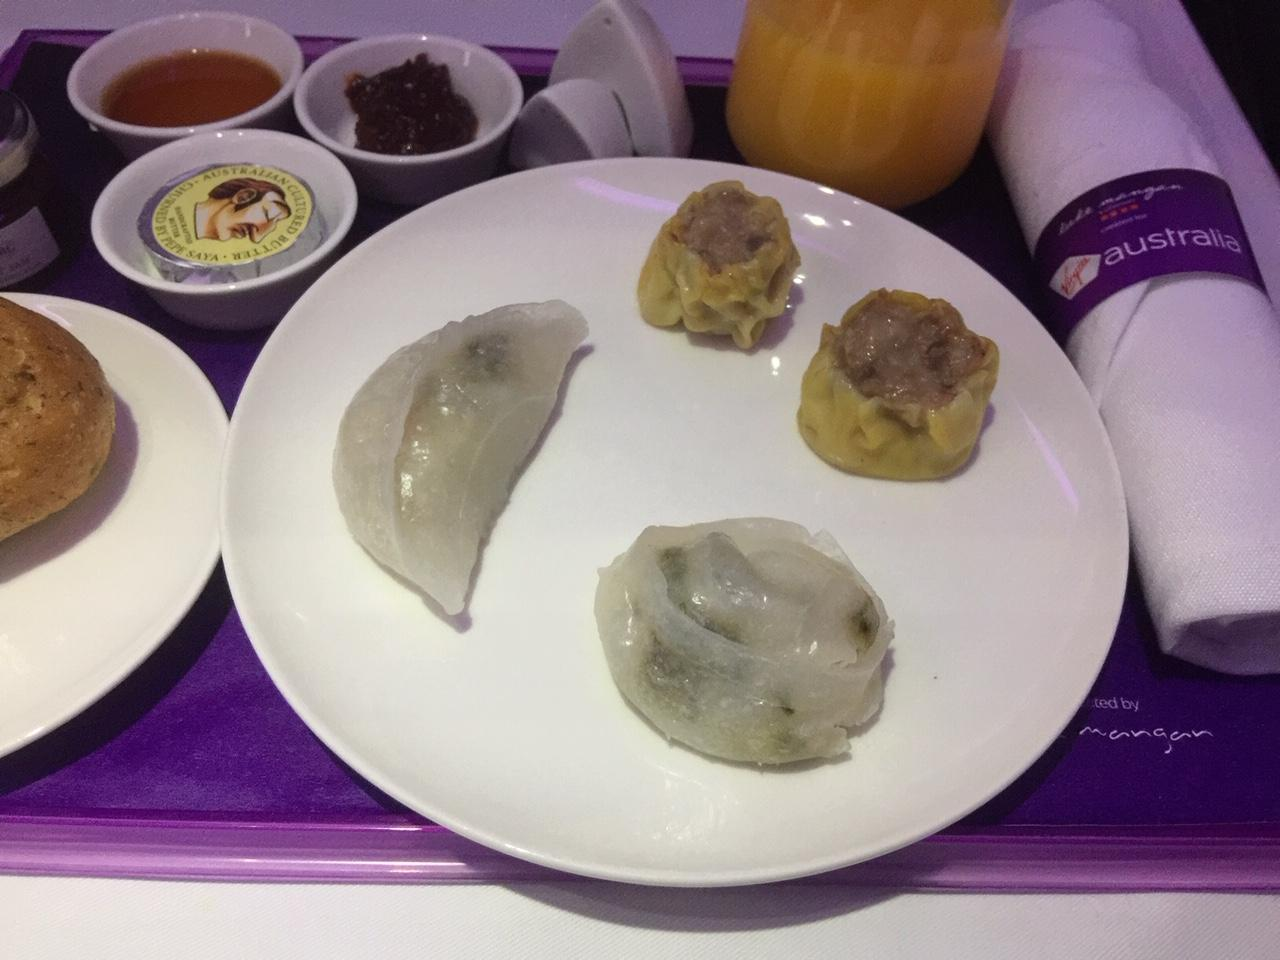 Virgin Australia Business Class Dim-sums